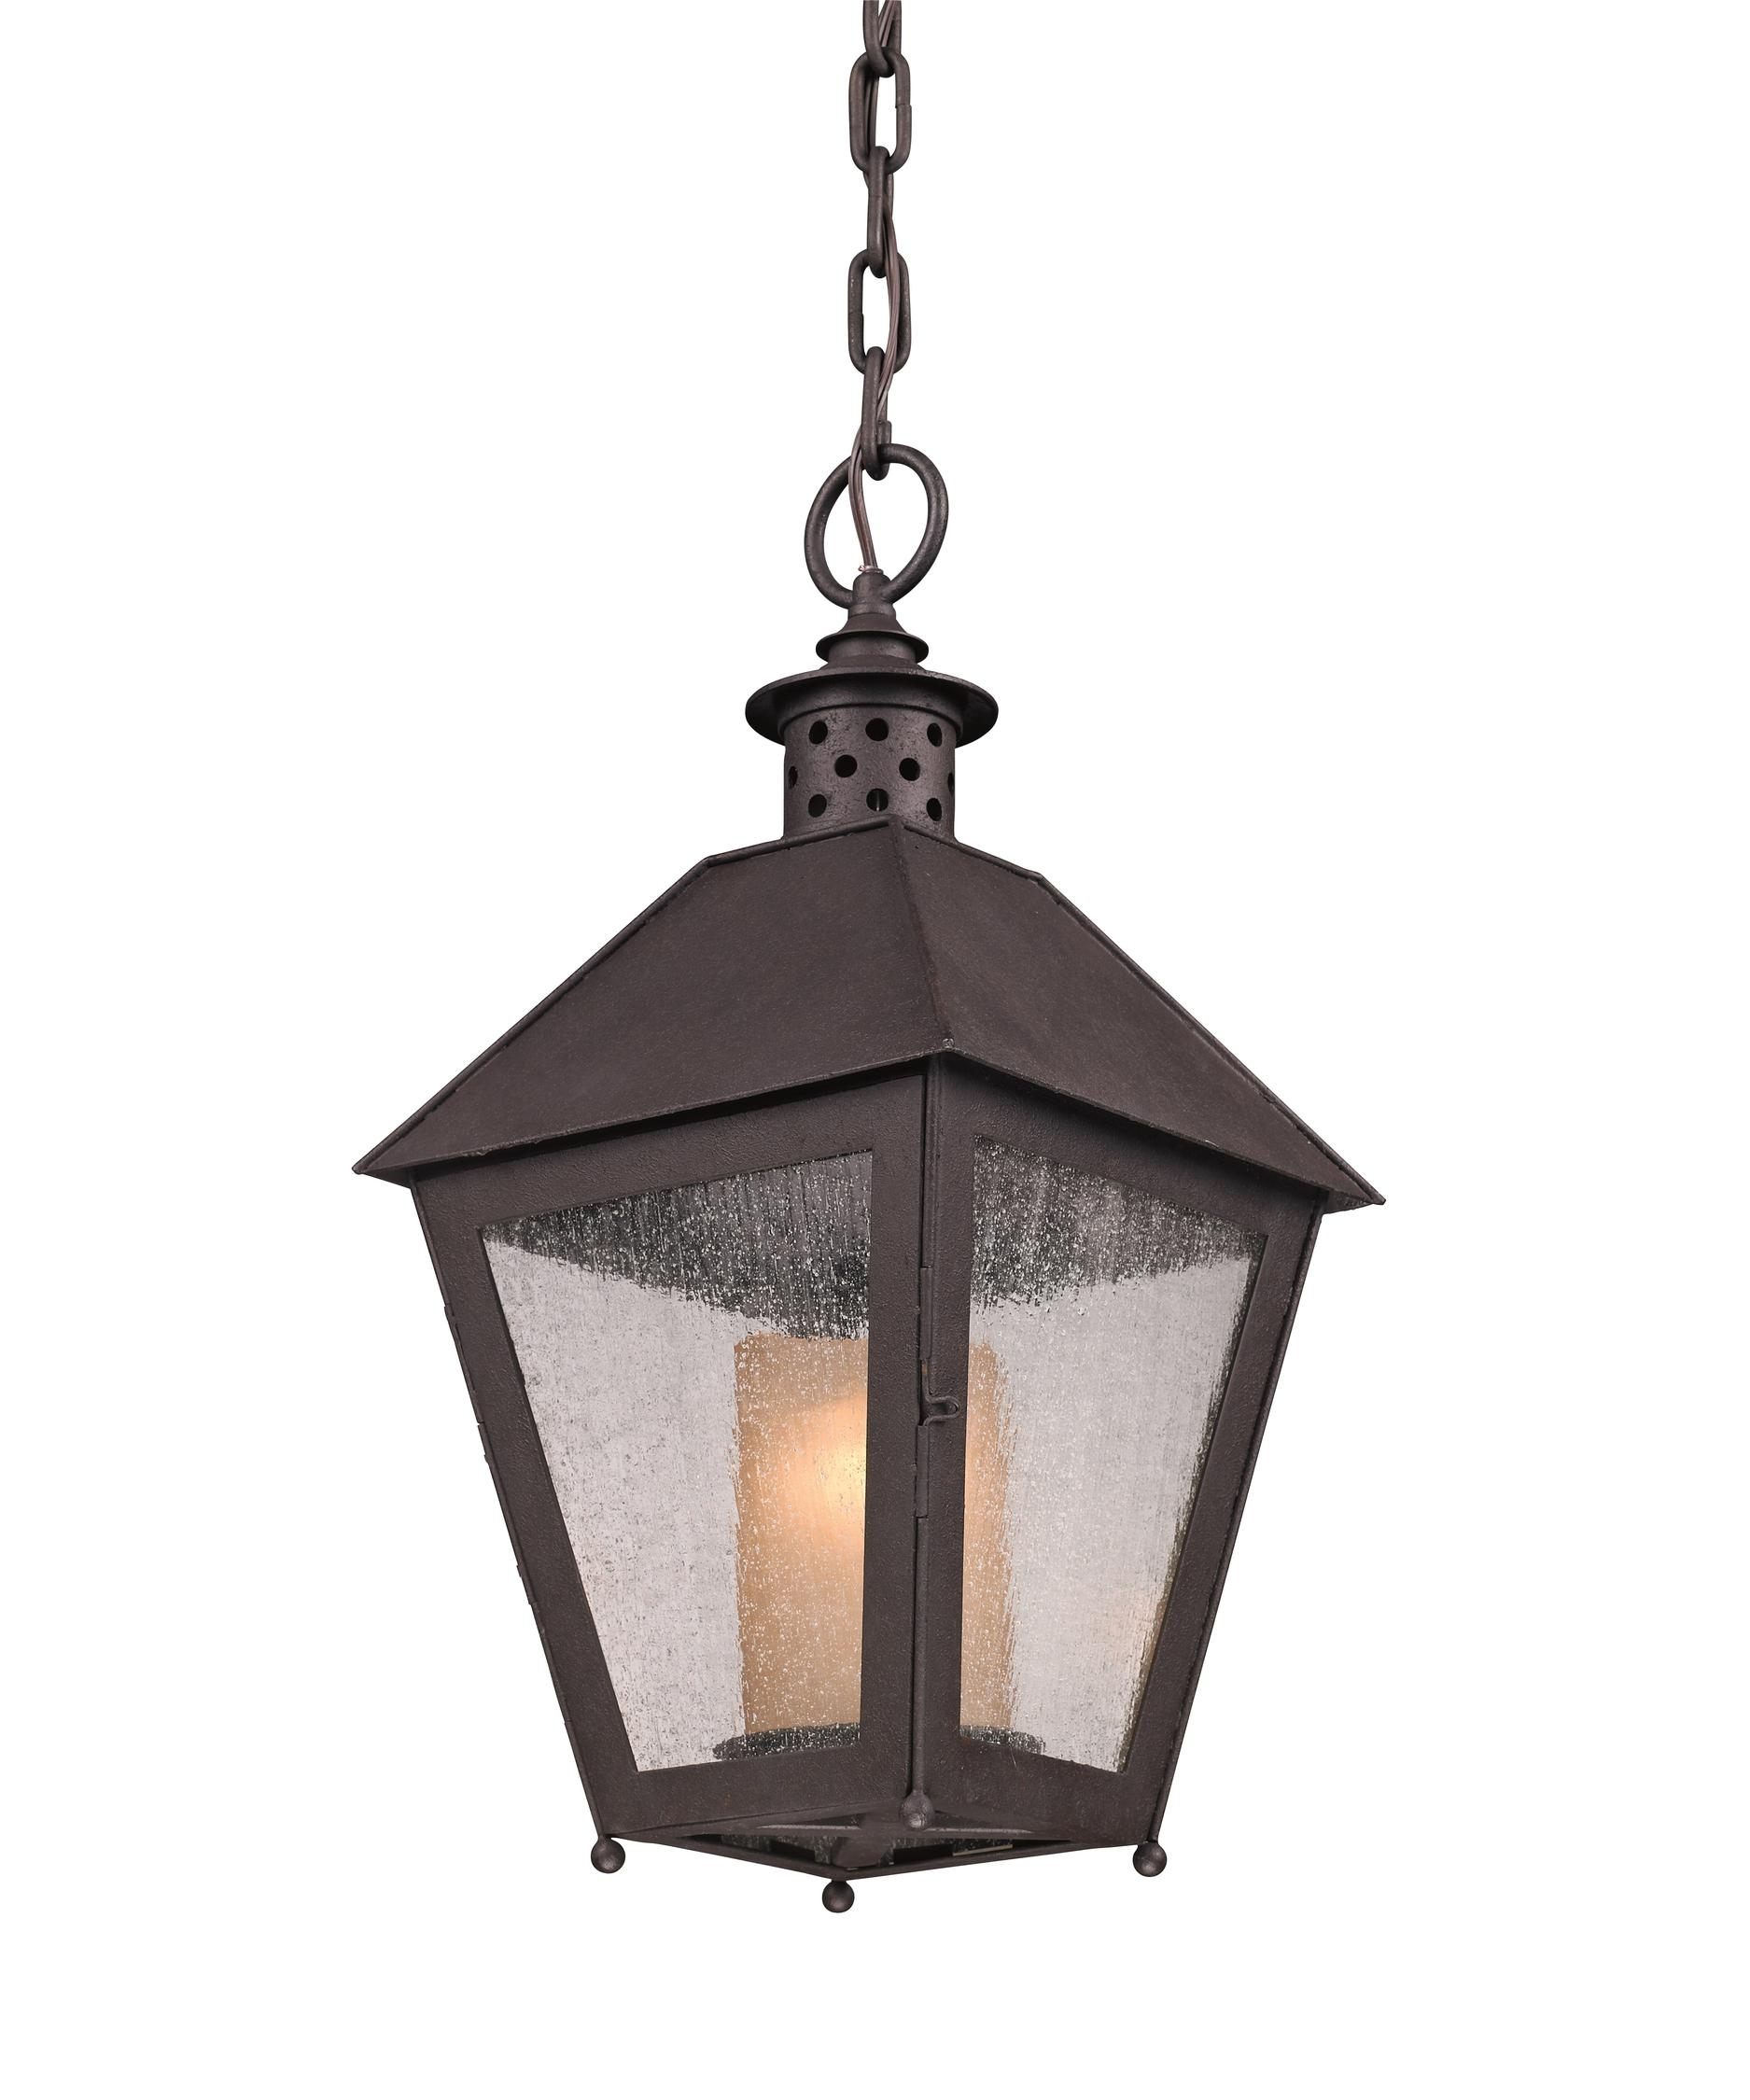 Troy Lighting F3297 Sagamore 10 Inch Wide 1 Light Outdoor Hanging Inside Outdoor Hanging Lanterns (View 13 of 15)